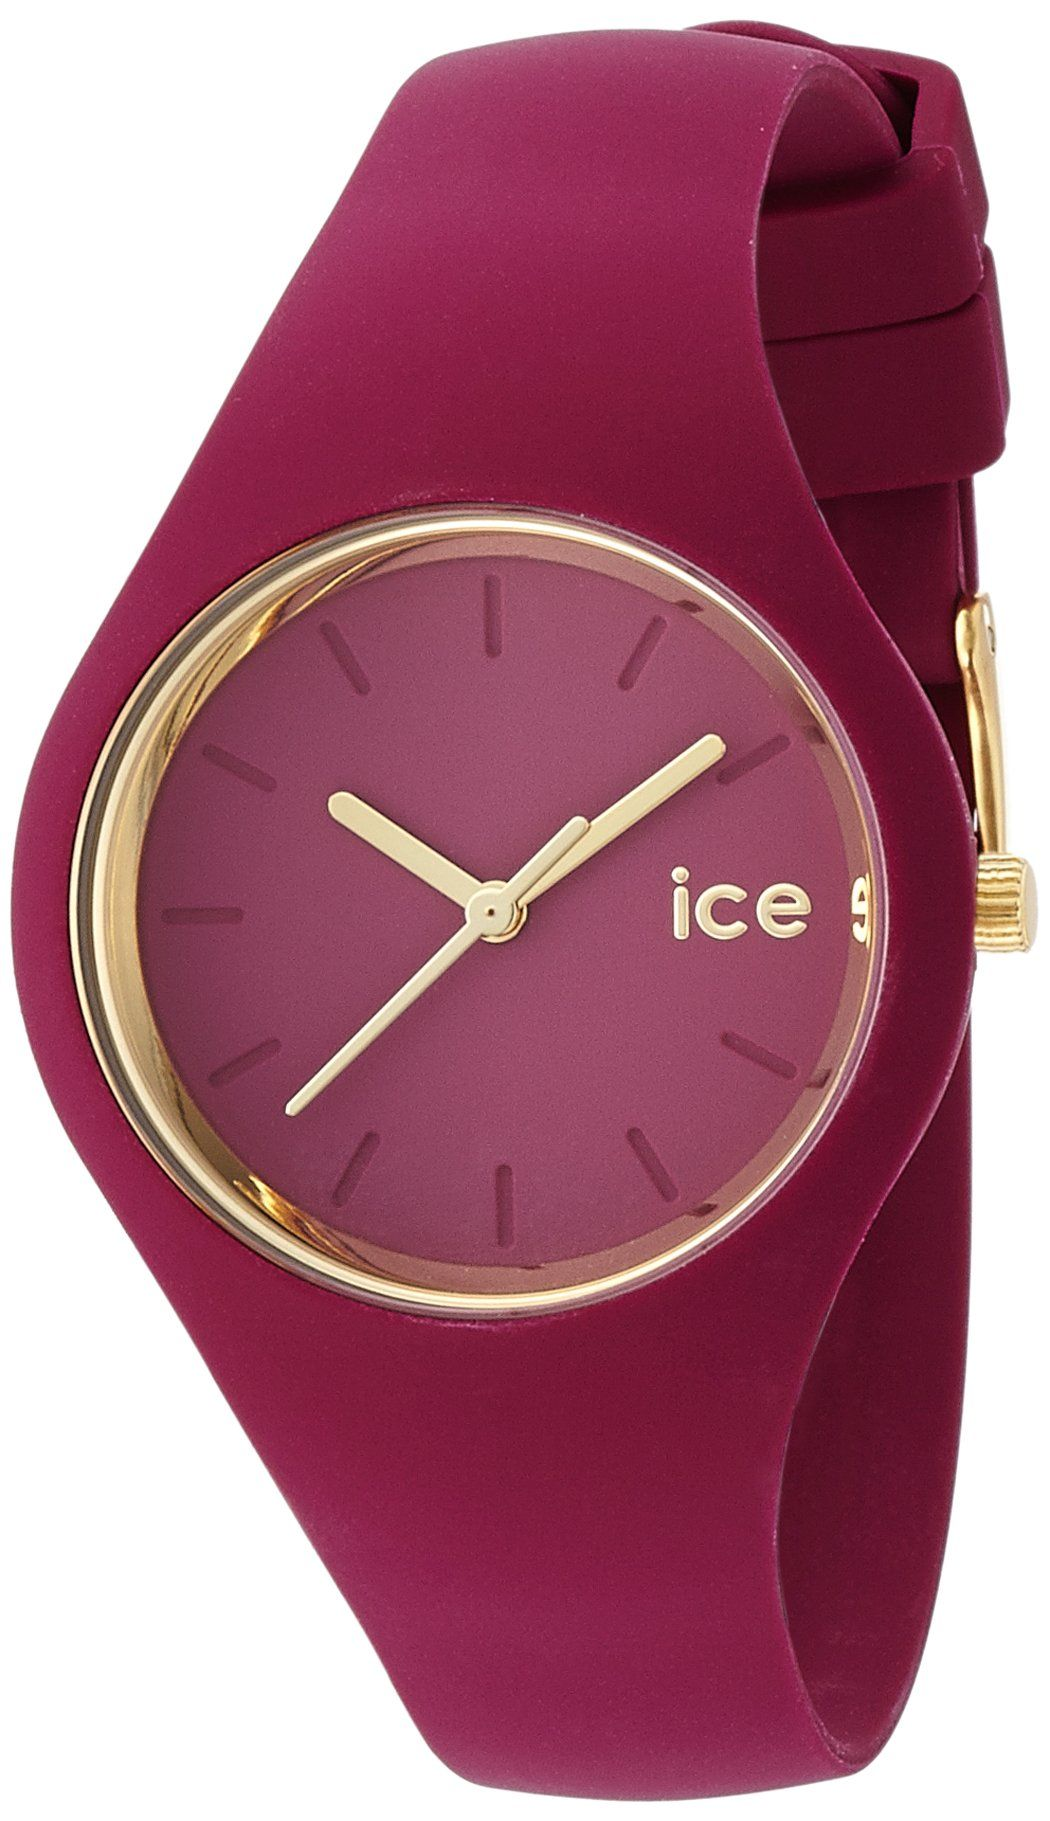 Ice-Watch - ICE.GL.ANE.S.S.14   Watches   Pinterest   Montre ... a5623c80604f